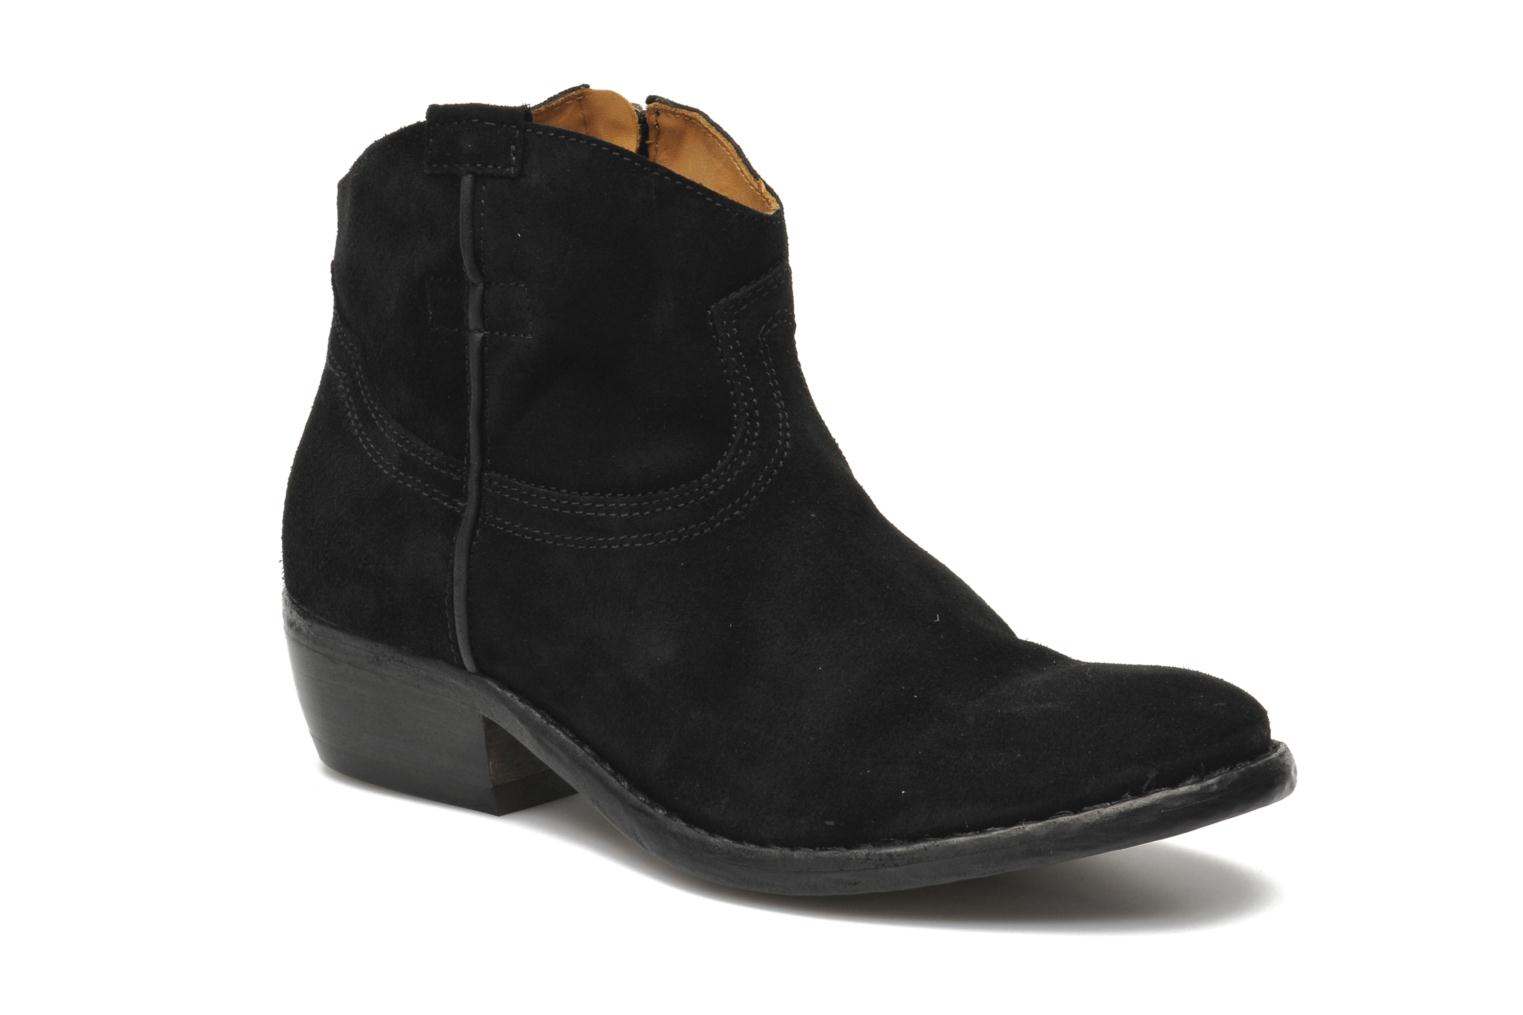 Boots en enkellaarsjes MEGAN ZIP BOOT SUEDE by Catarina Martins